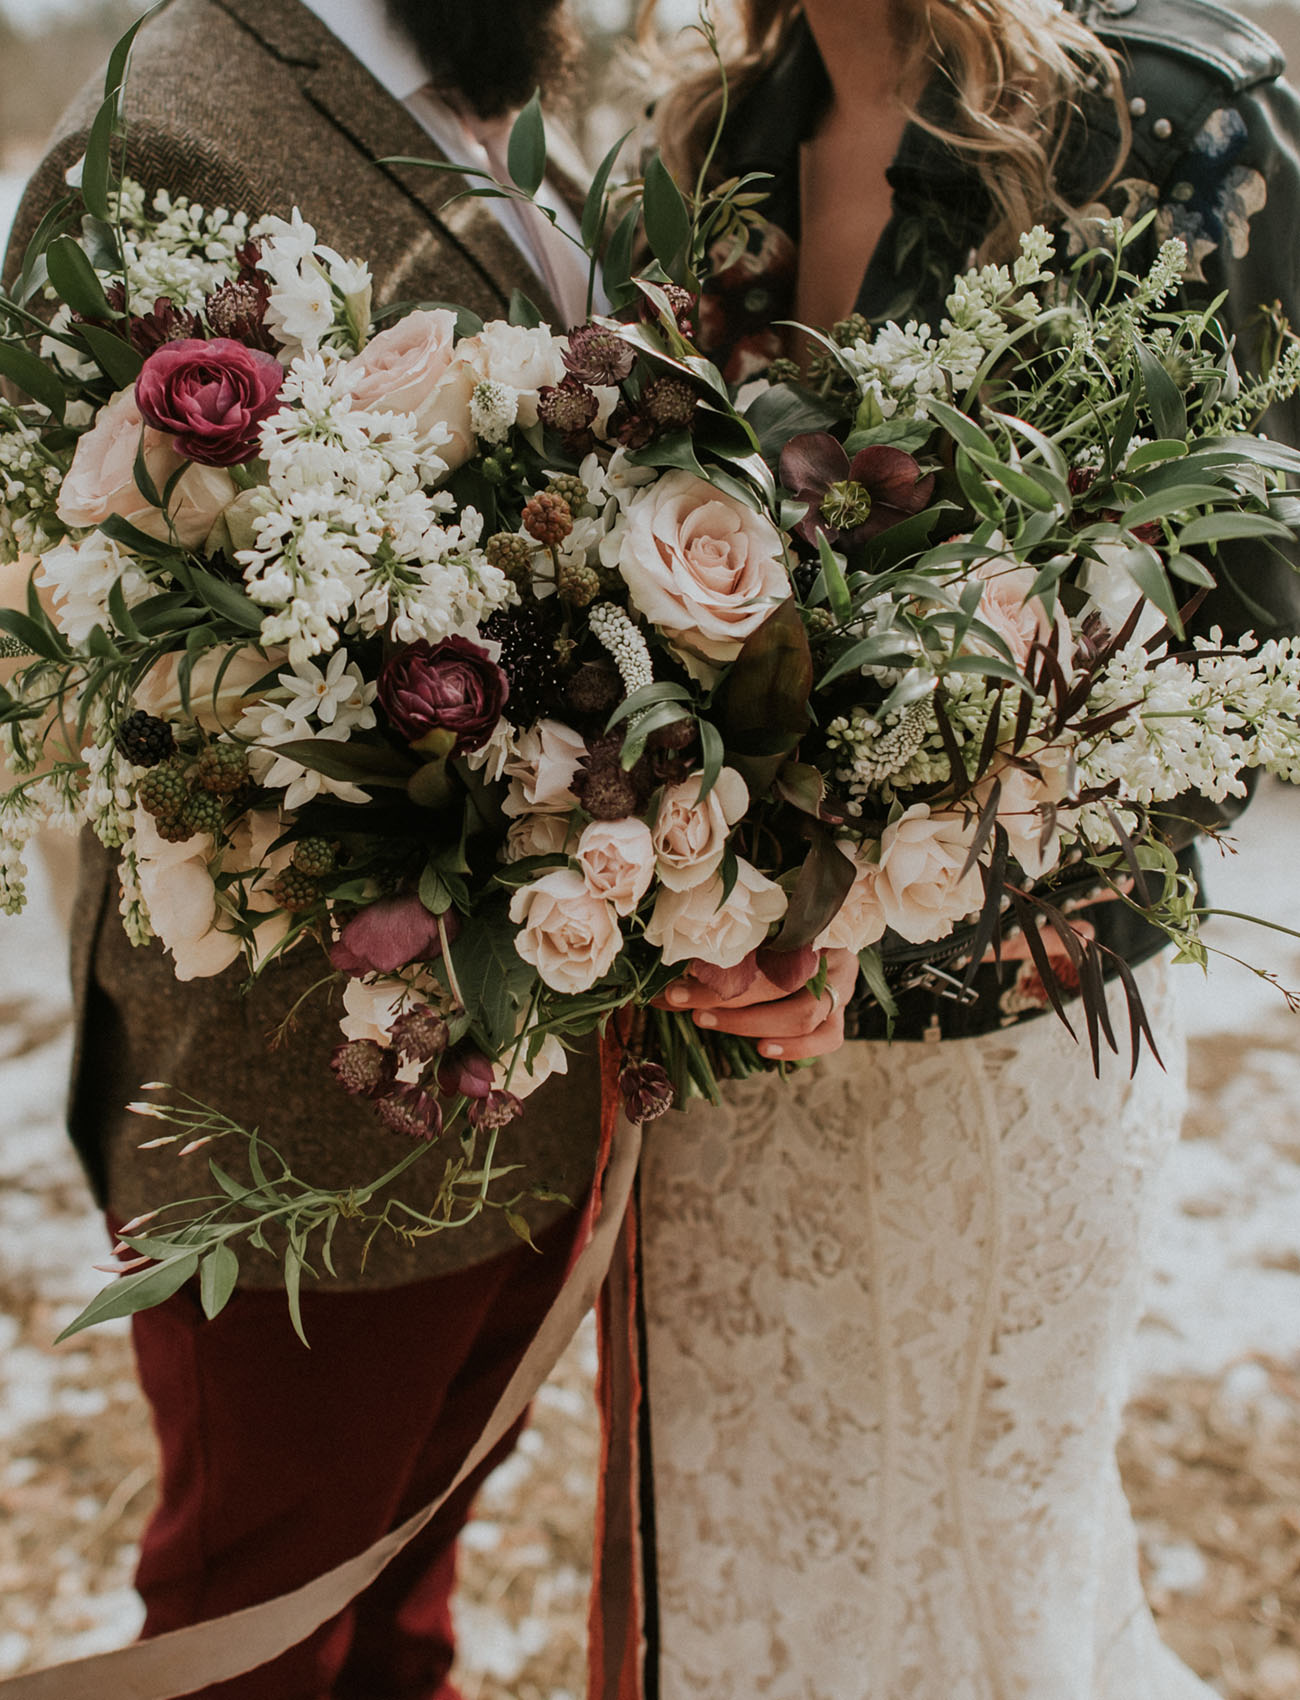 What a gorgeous and lush wedding bouquet done with blush blooms, burgundy ones and some berries